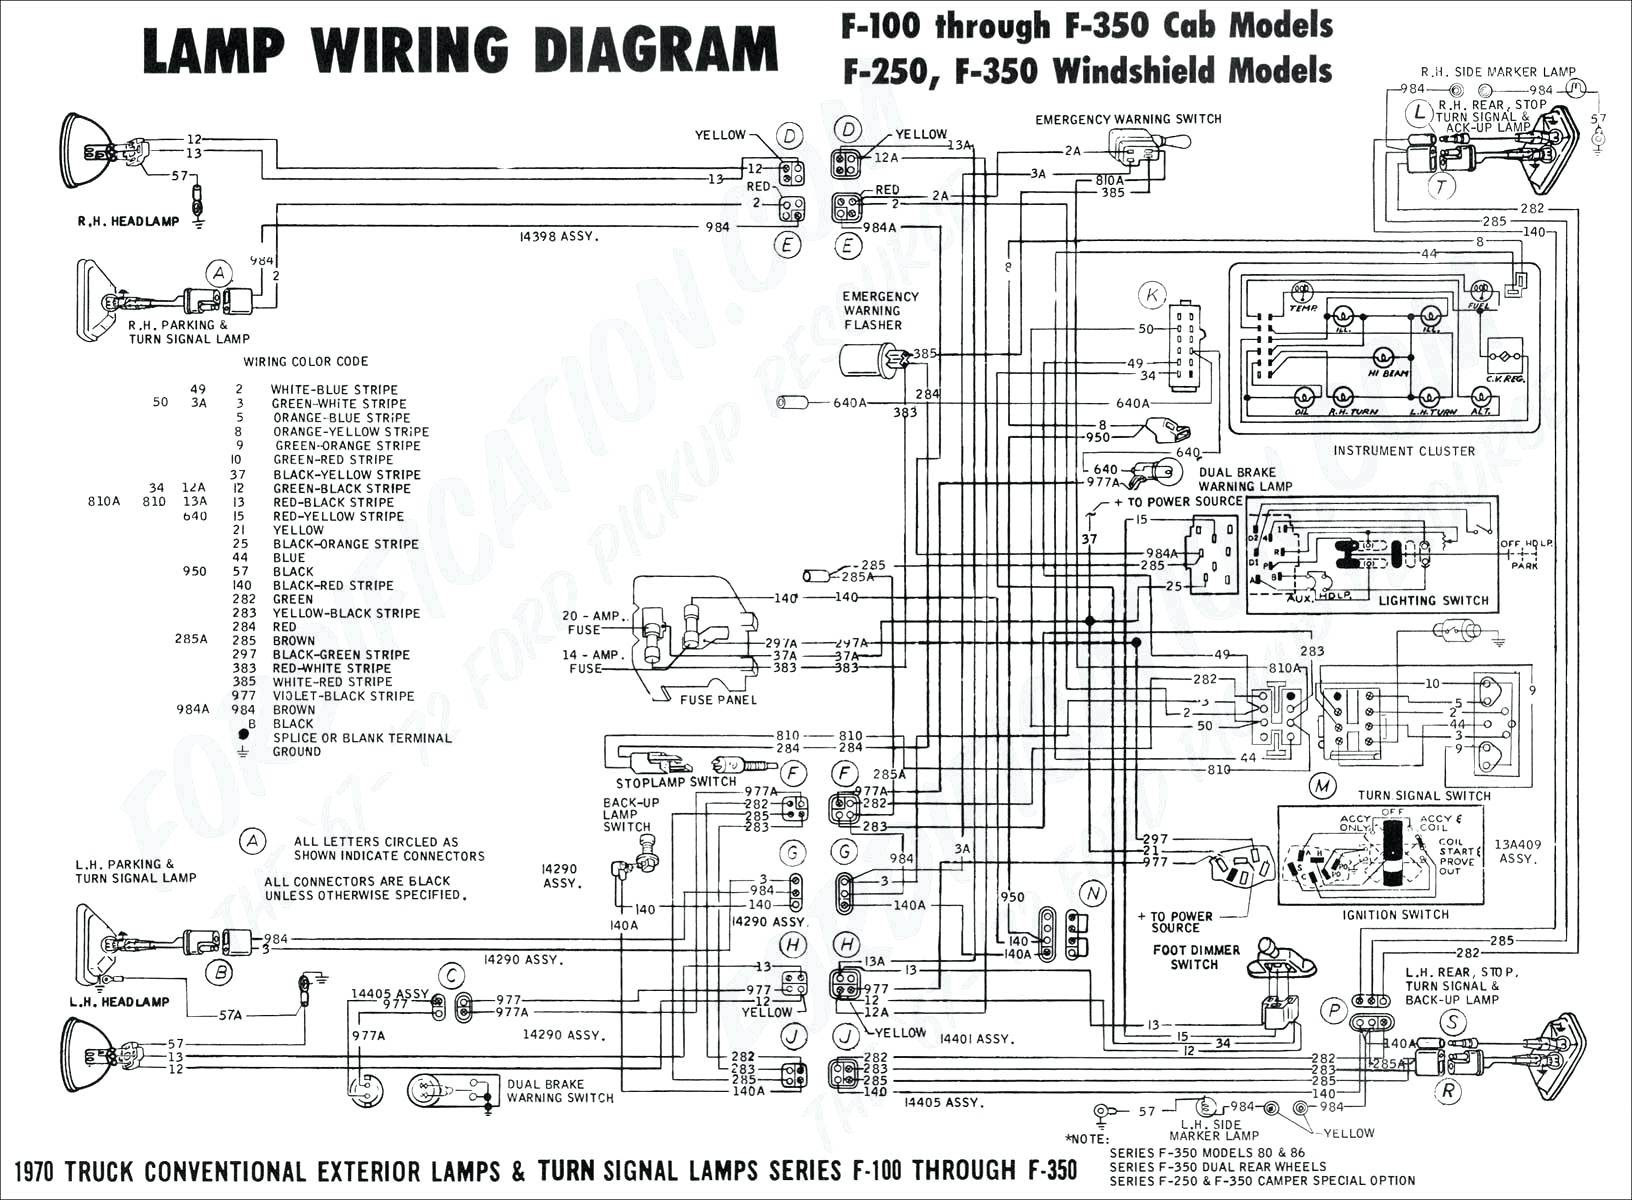 1999 Mitsubishi Eclipse Engine Diagram